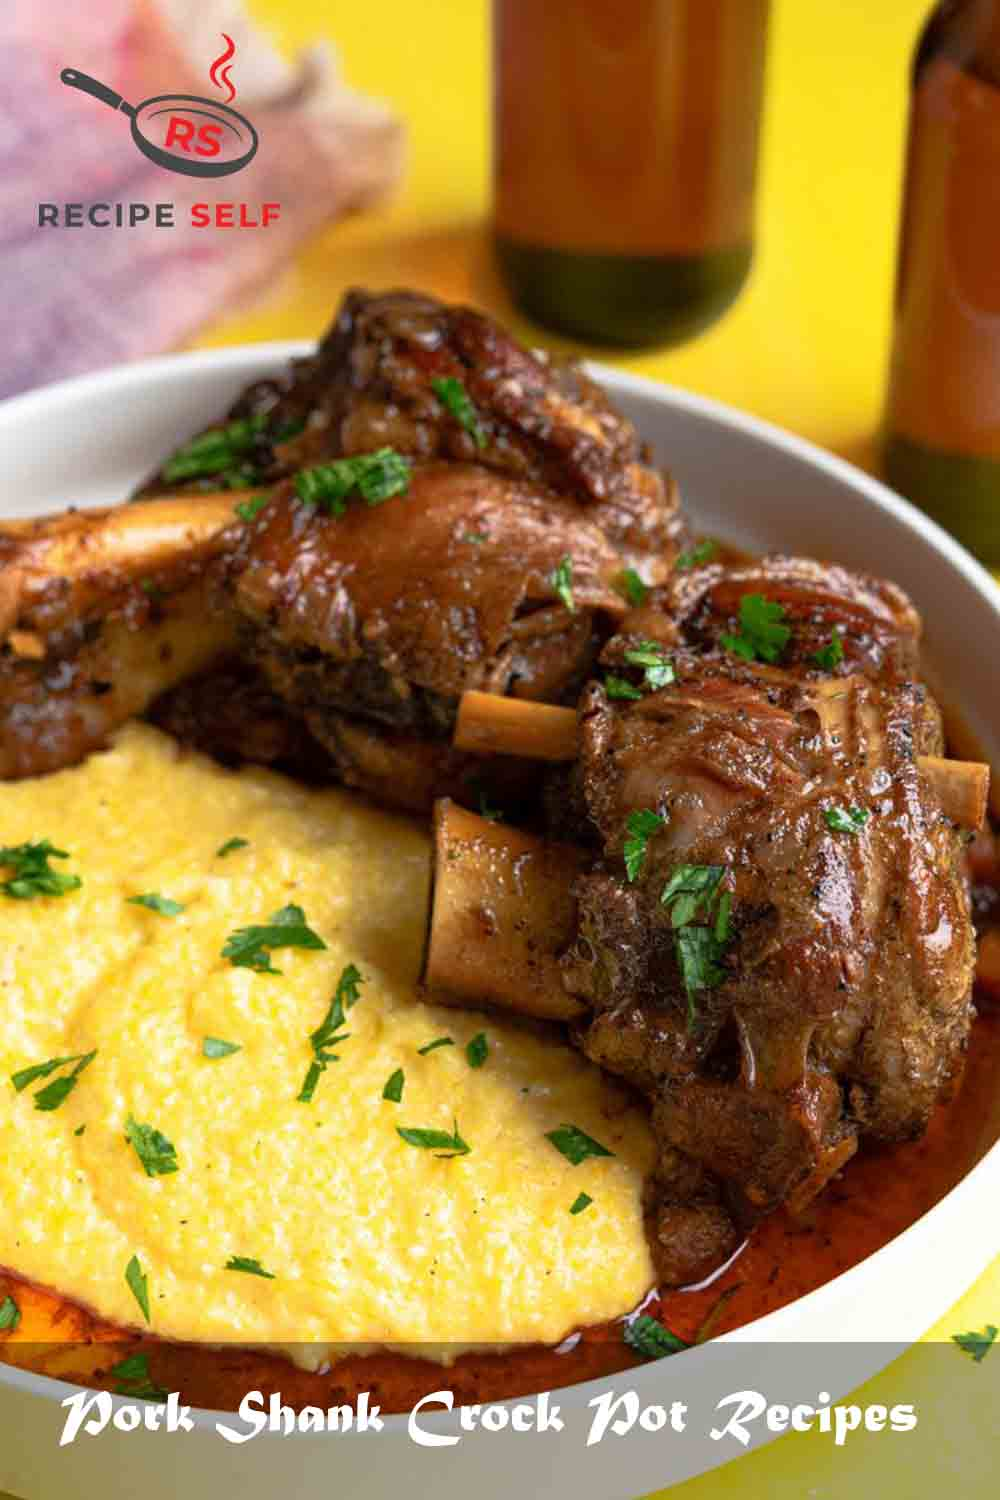 Pork Shank Crock Pot Recipes